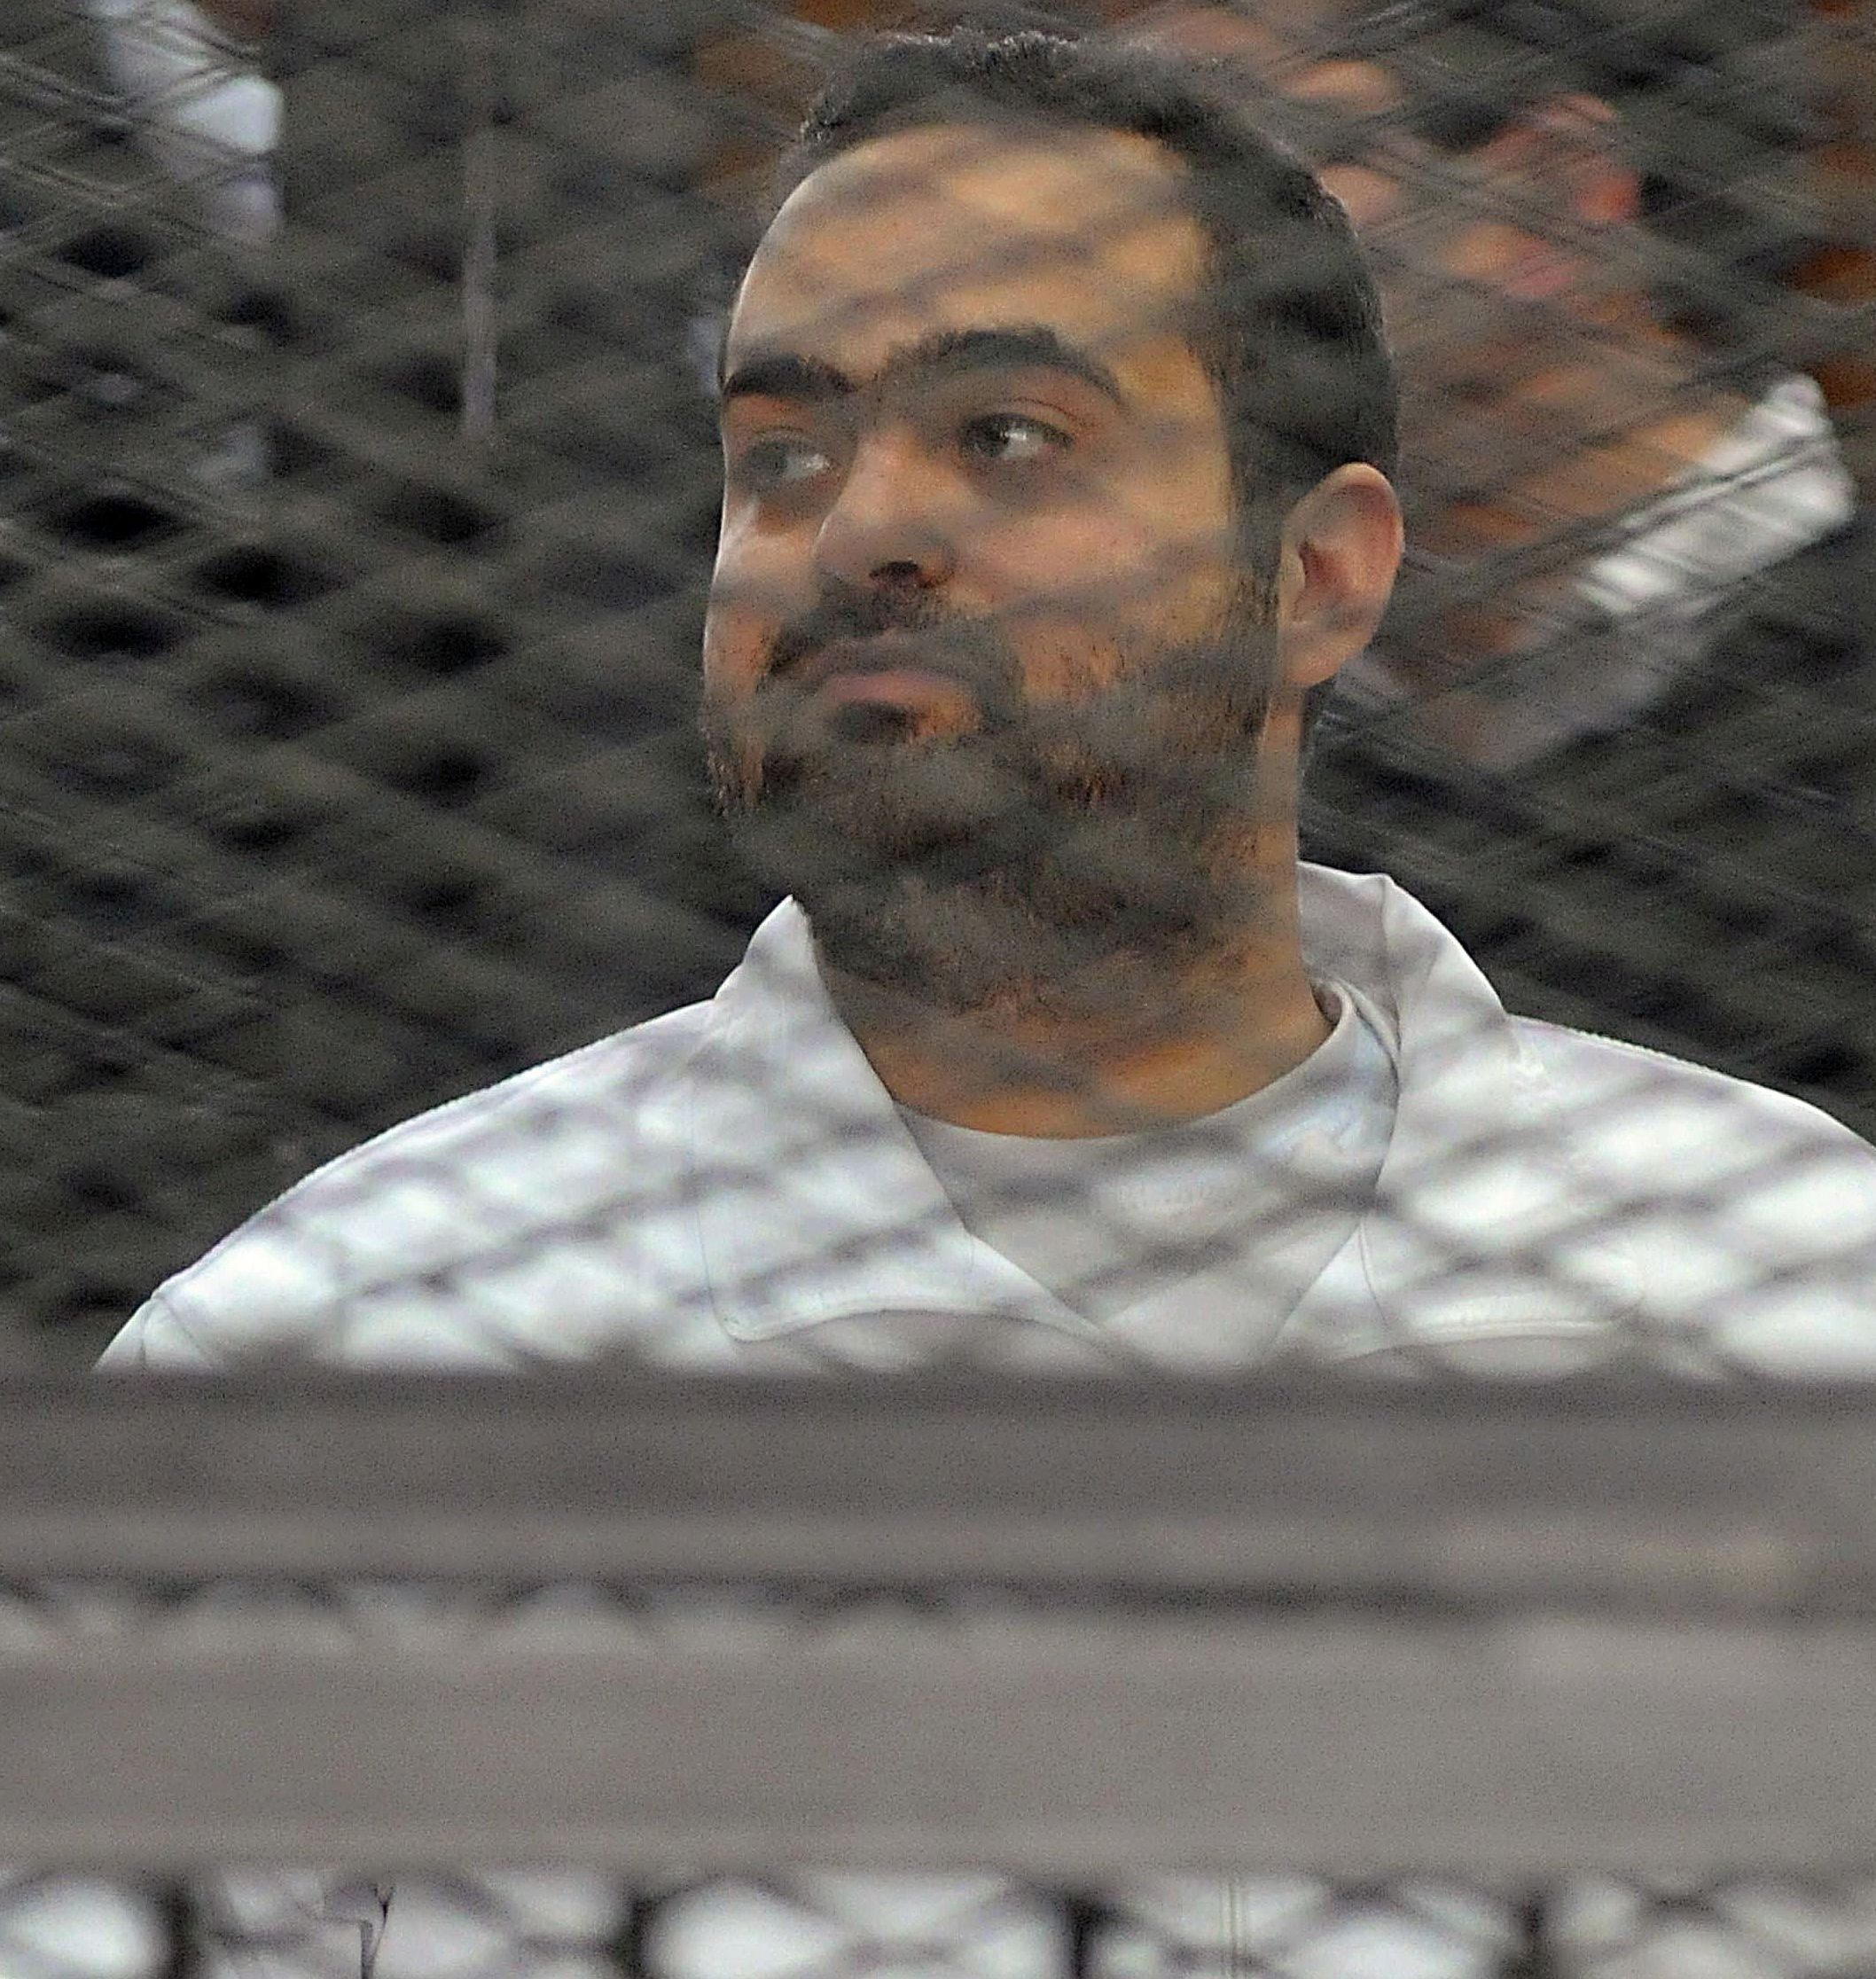 Egyptian prominent activicts Mohamed Adel stands in the accused dock during his trial on December 22, 2013, in Cairo. An Egyptian court sentenced three activists, Mohamed Adel, Ahmed Maher (unseen), the founder of the April 6 youth movement that led the revolt against former president Hosni Mubarak, and Ahmed Douma (unseen), all accused of spearheading the 2011 uprising against Mubarak to three years in jail for organising an unlicensed protest, judicial sources said. It was the first such verdict against non-Islamist protesters since the overthrow of president Mohamed Morsi in July, and was seen by rights groups as part of a widening crackdown on demonstrations by military-installed authorities. AFP PHOTO/STR